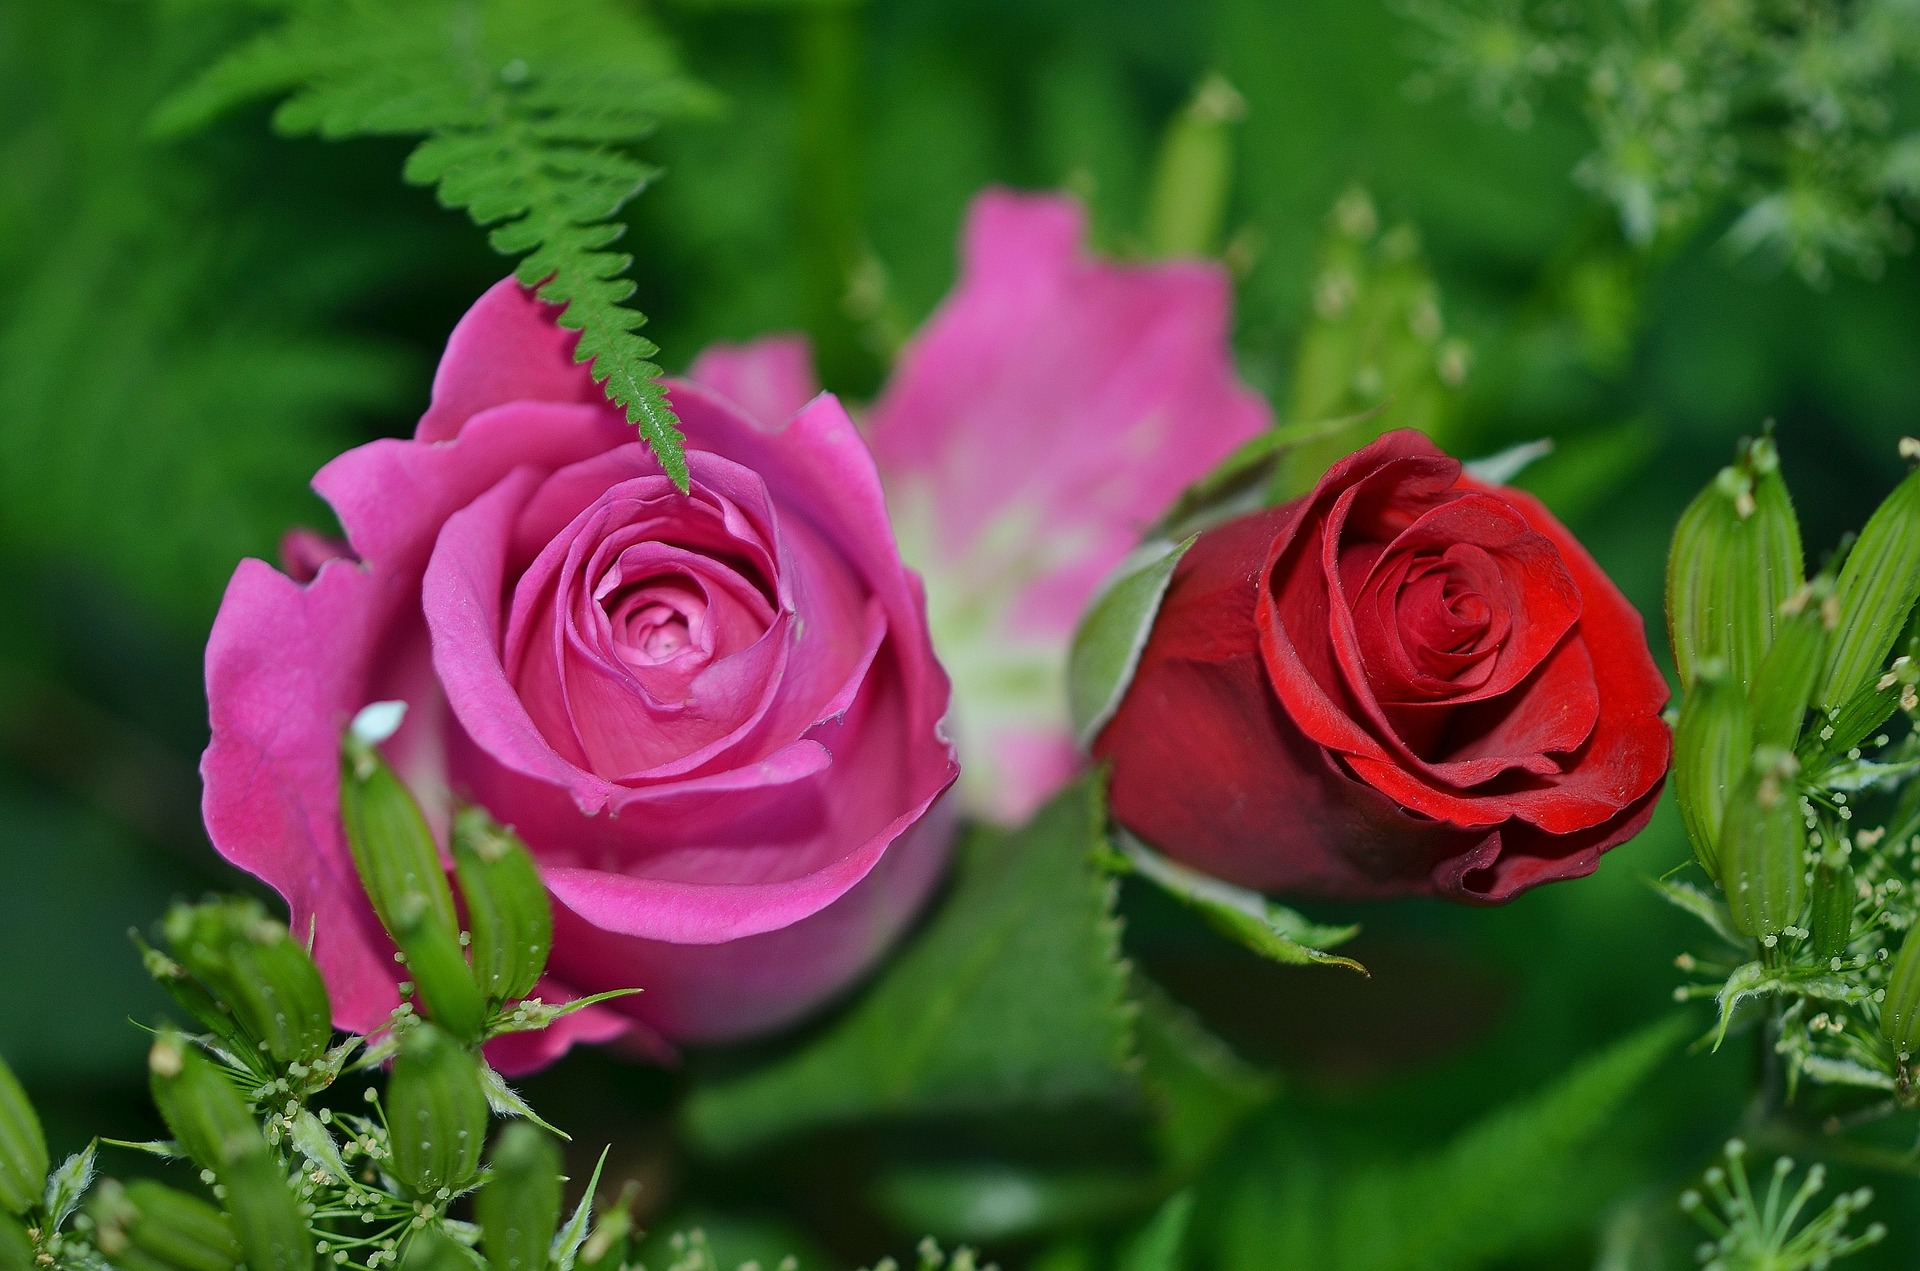 Growing and Caring for Roses